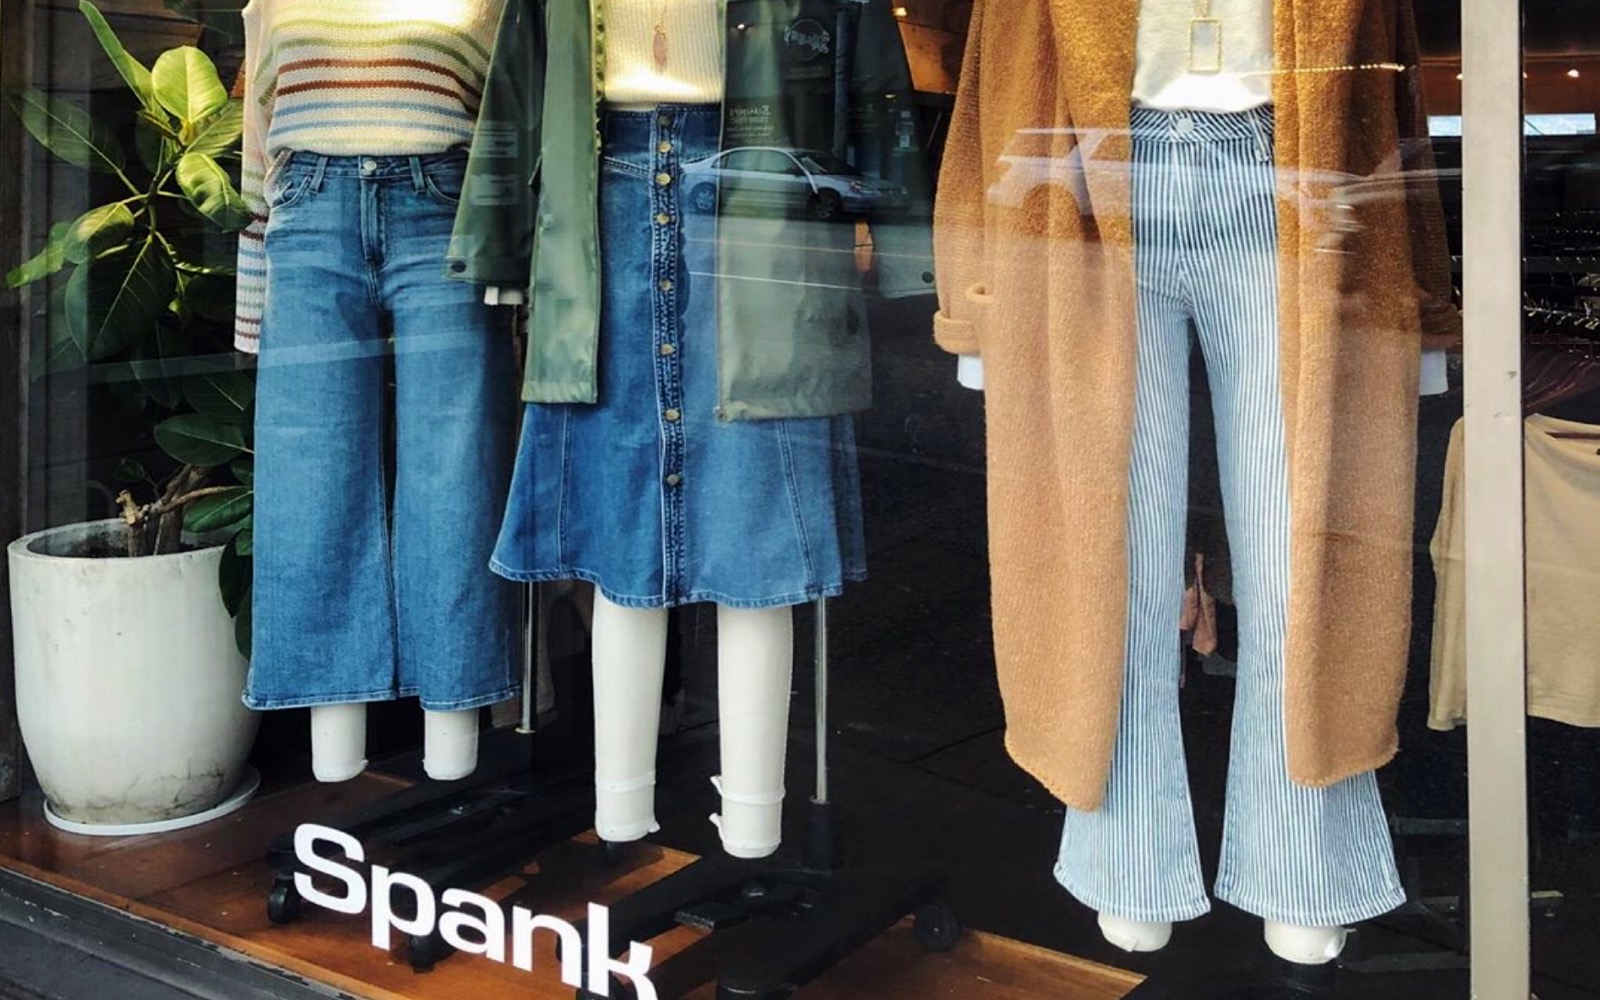 The window at Spank Clothing, Commercial Drive